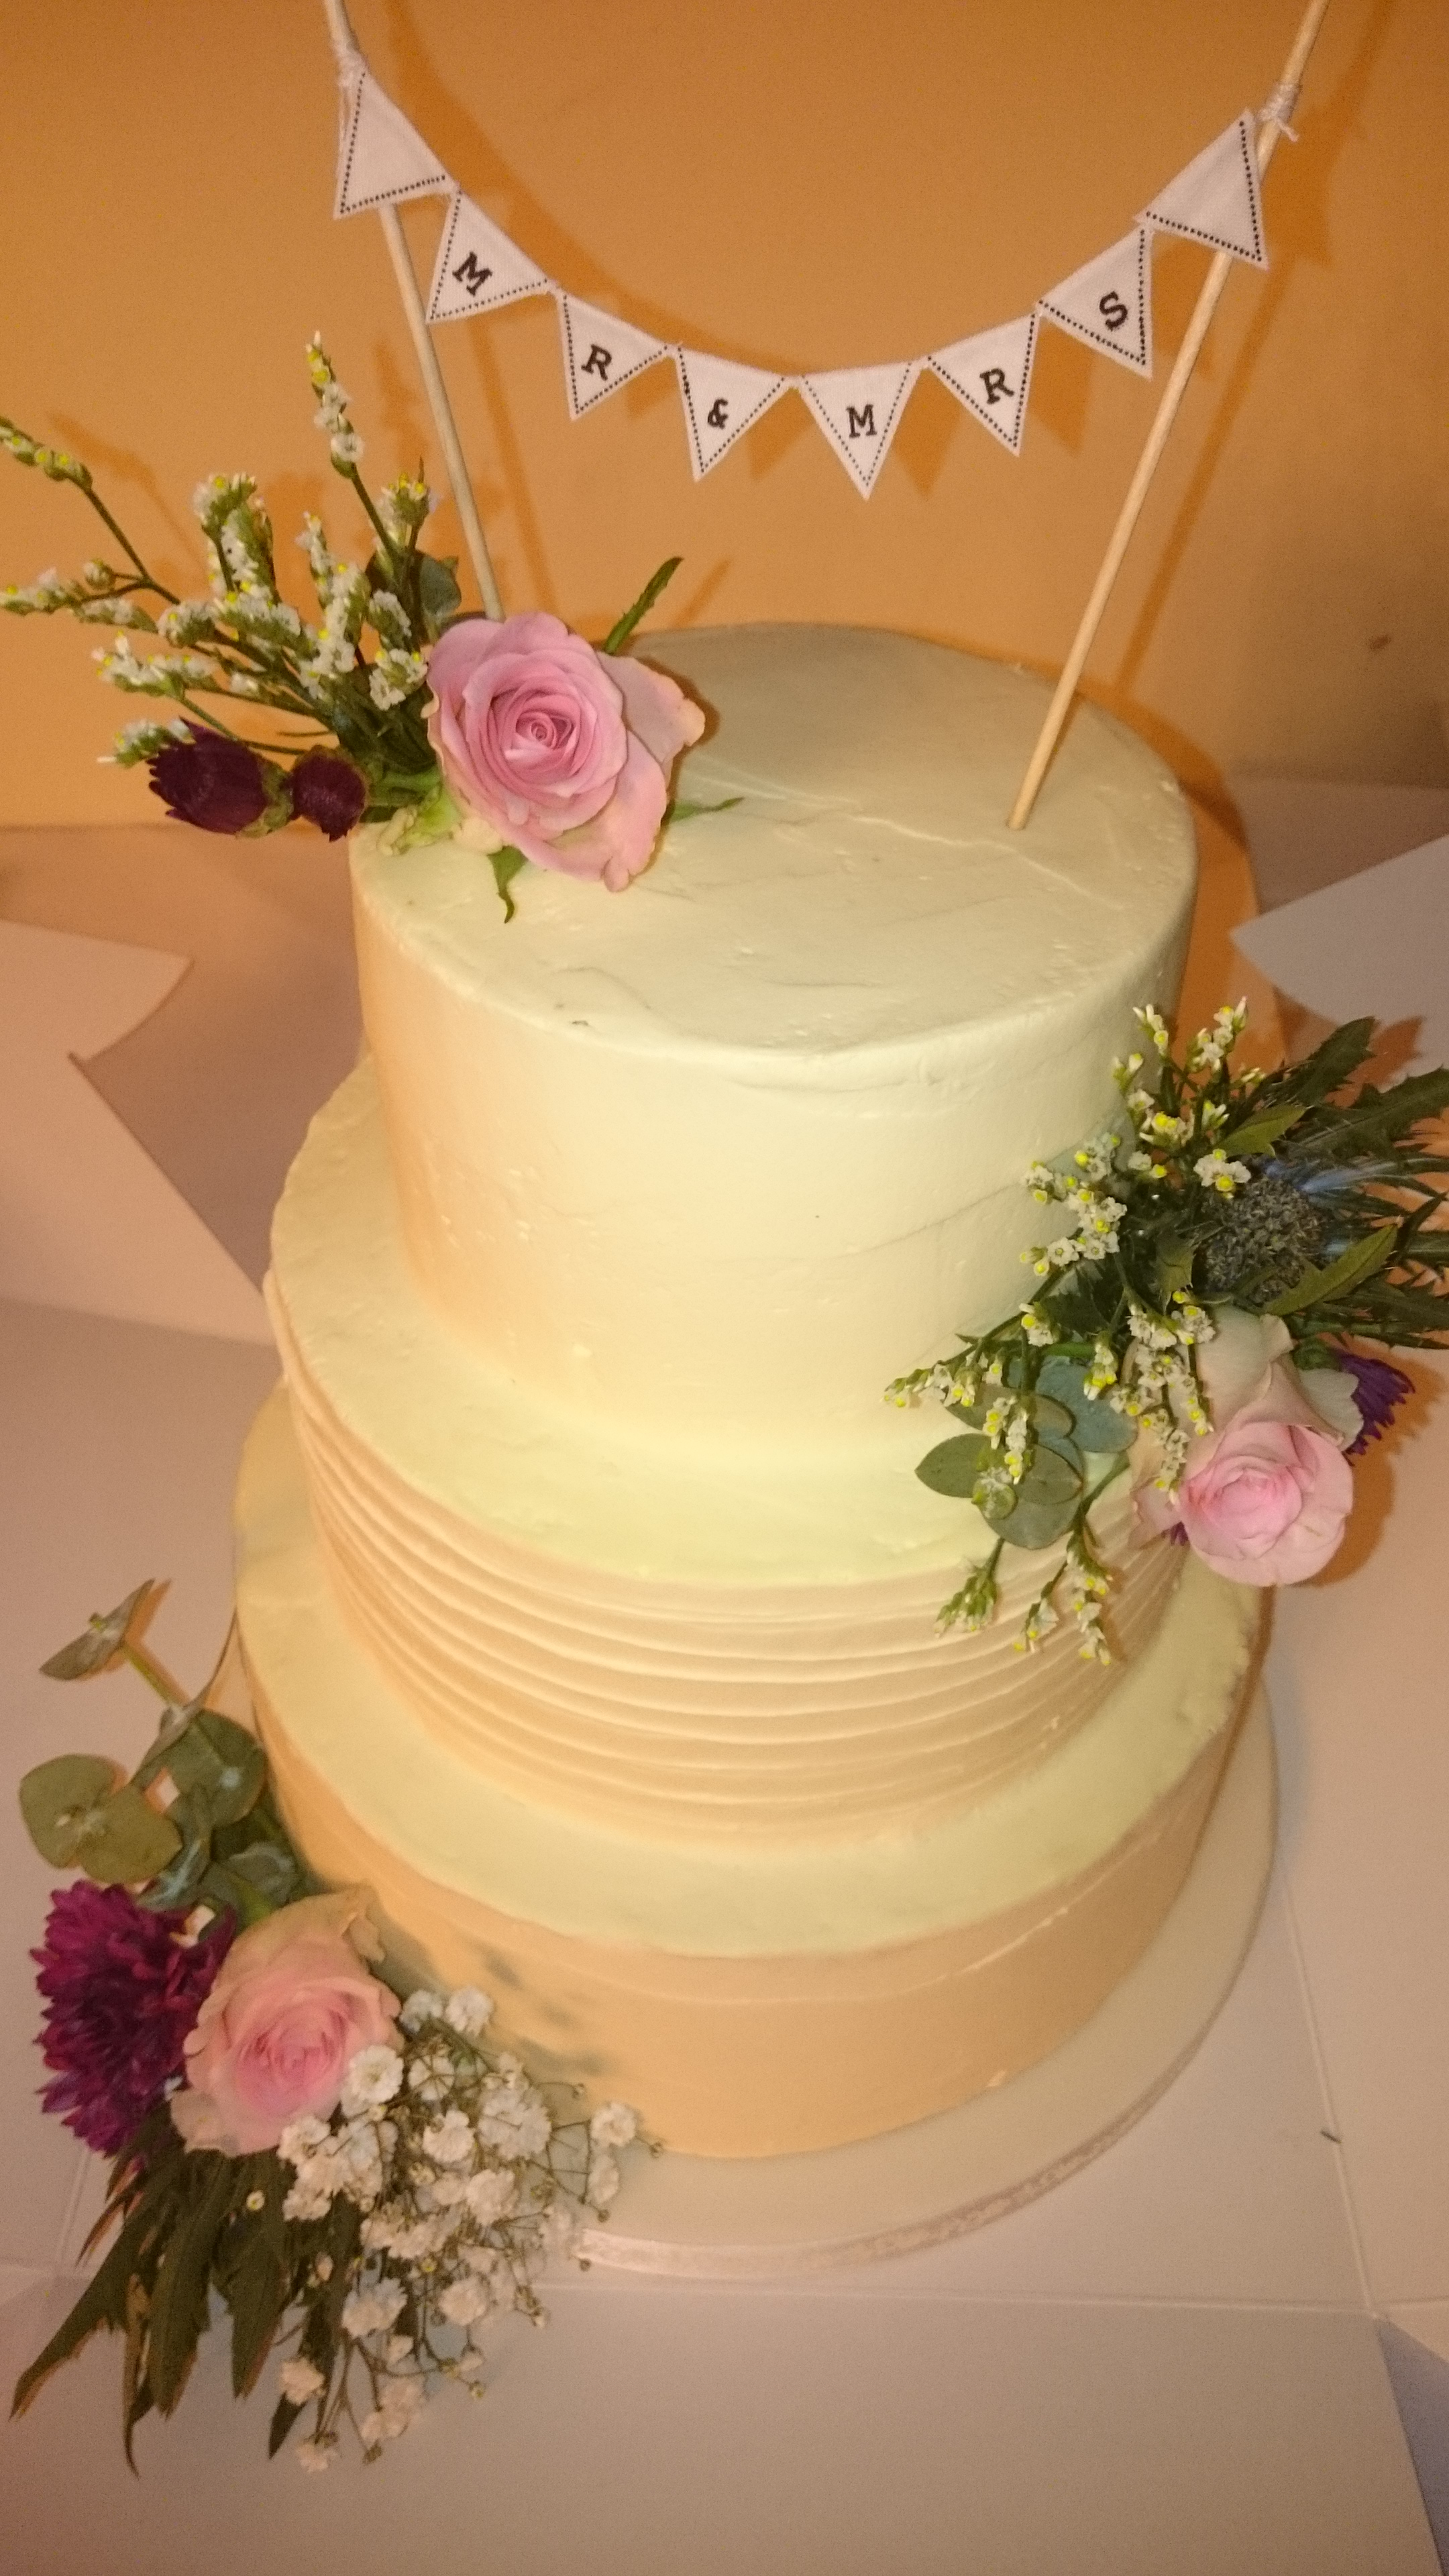 Wedding cakes – The Baking Room